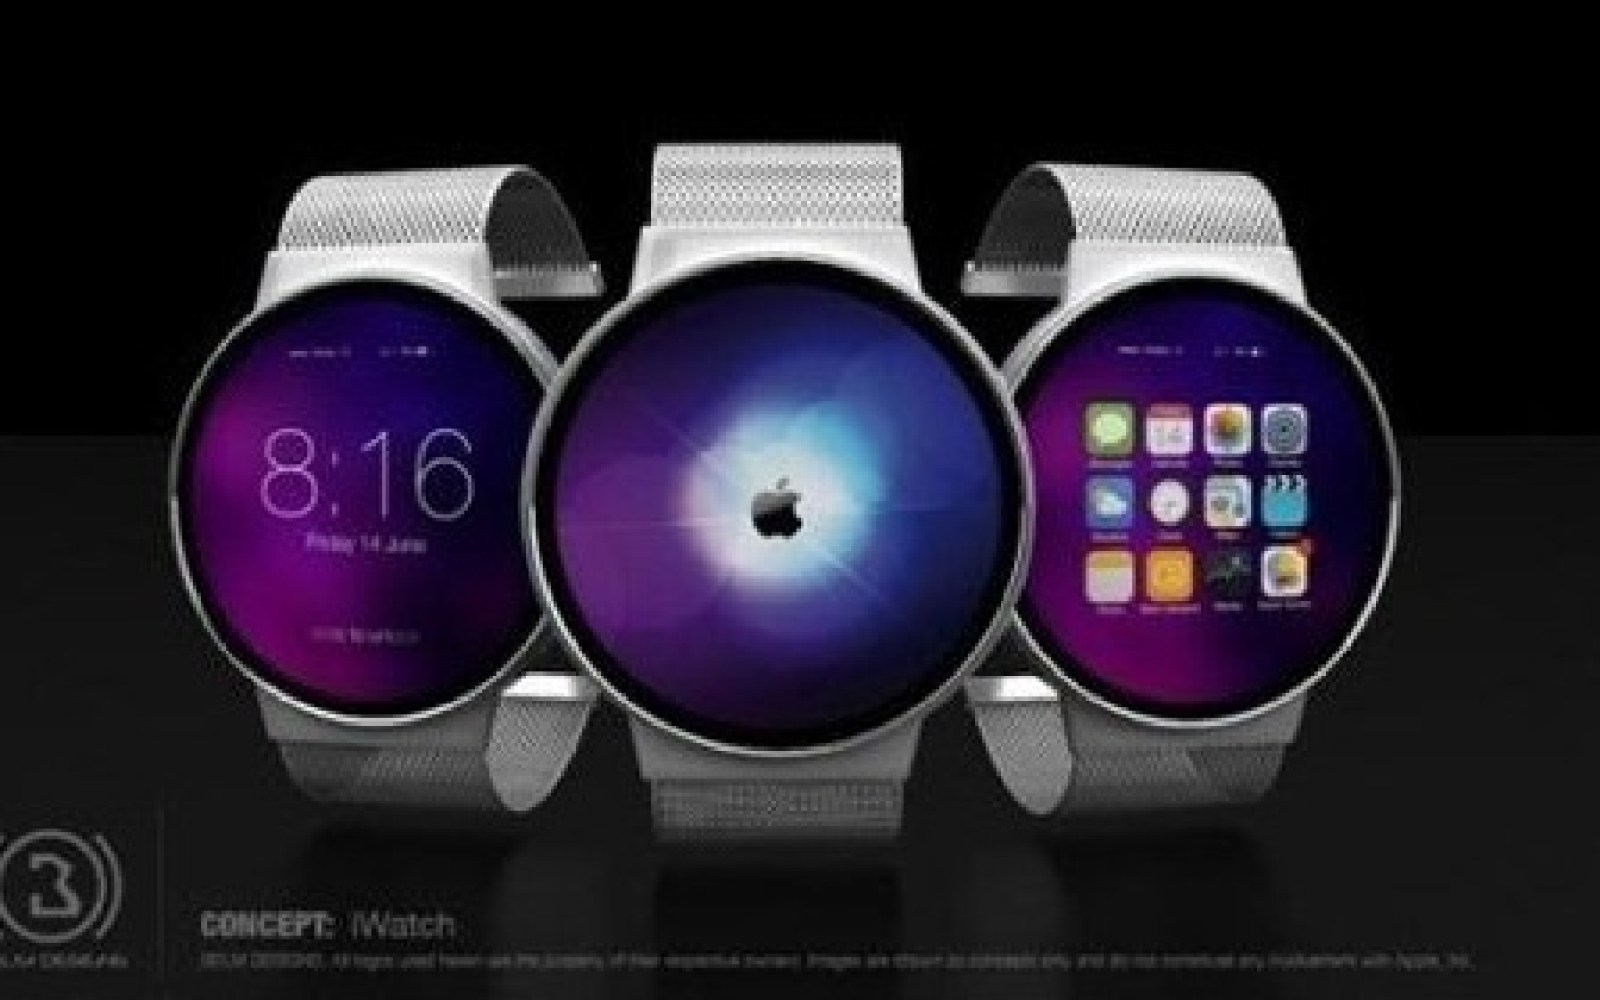 New report corroborates rumors of LG iWatch display, multiple display sizes, late 2014 release